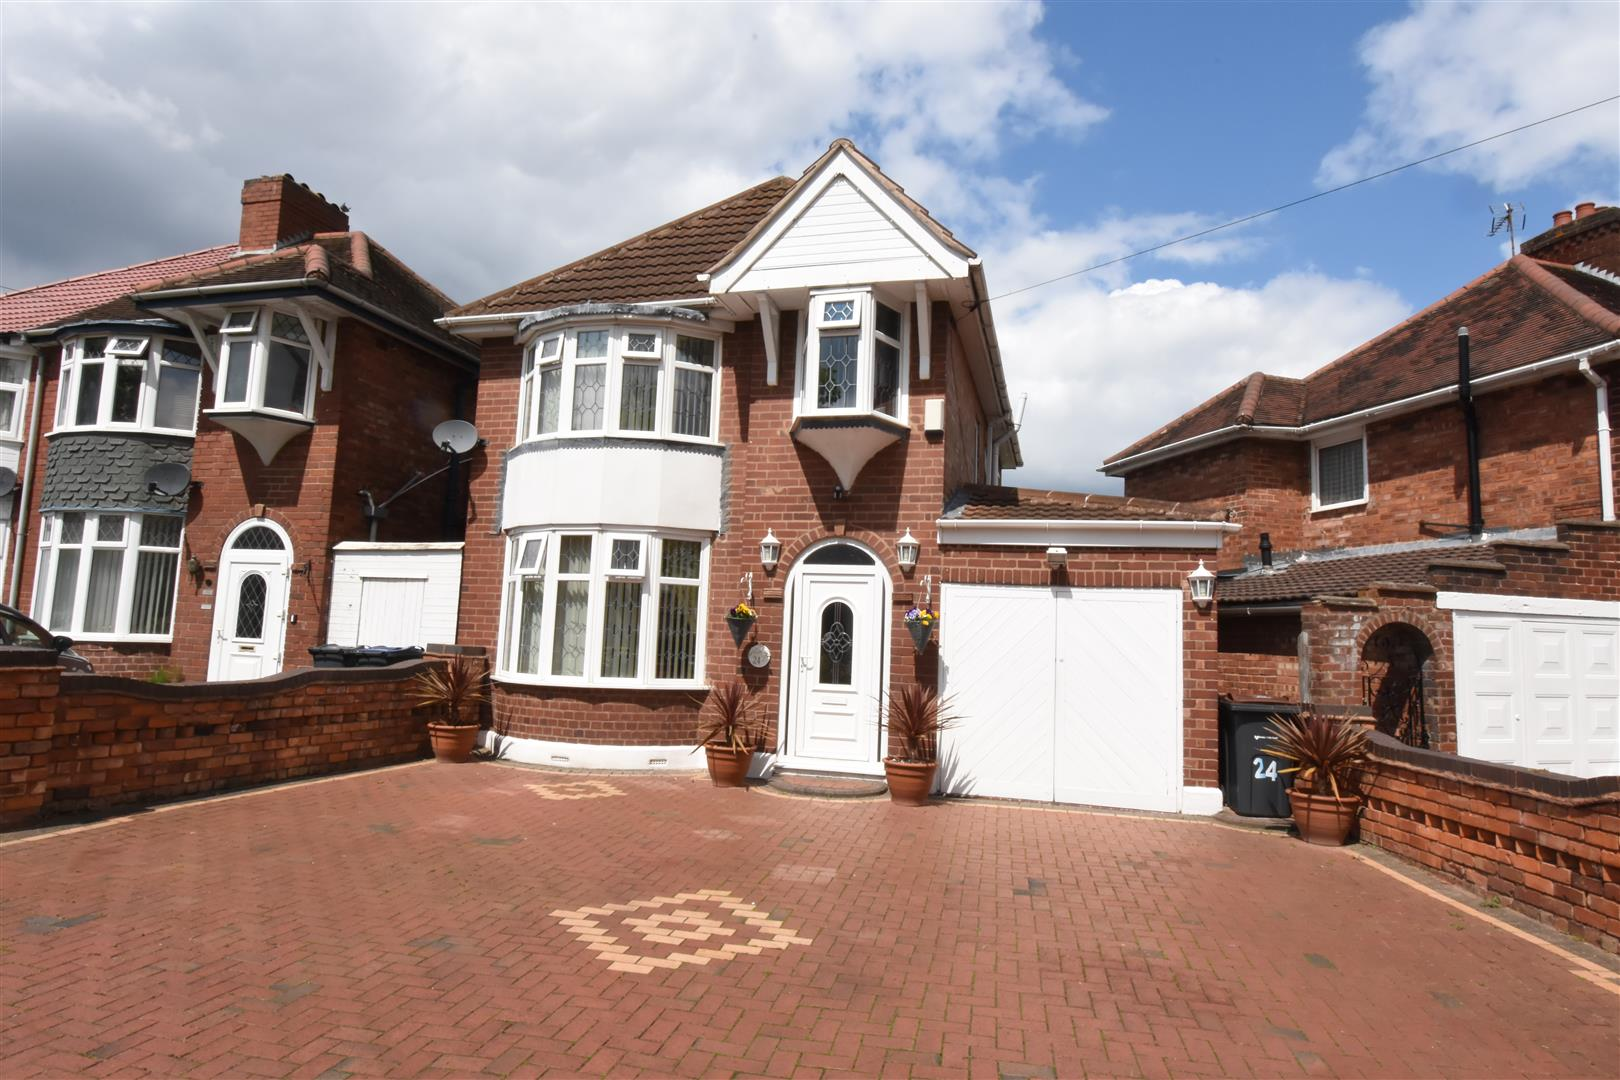 3 bed house for sale in 24 Hodge Hill Road, Hodge Hill, Birmingham, B34